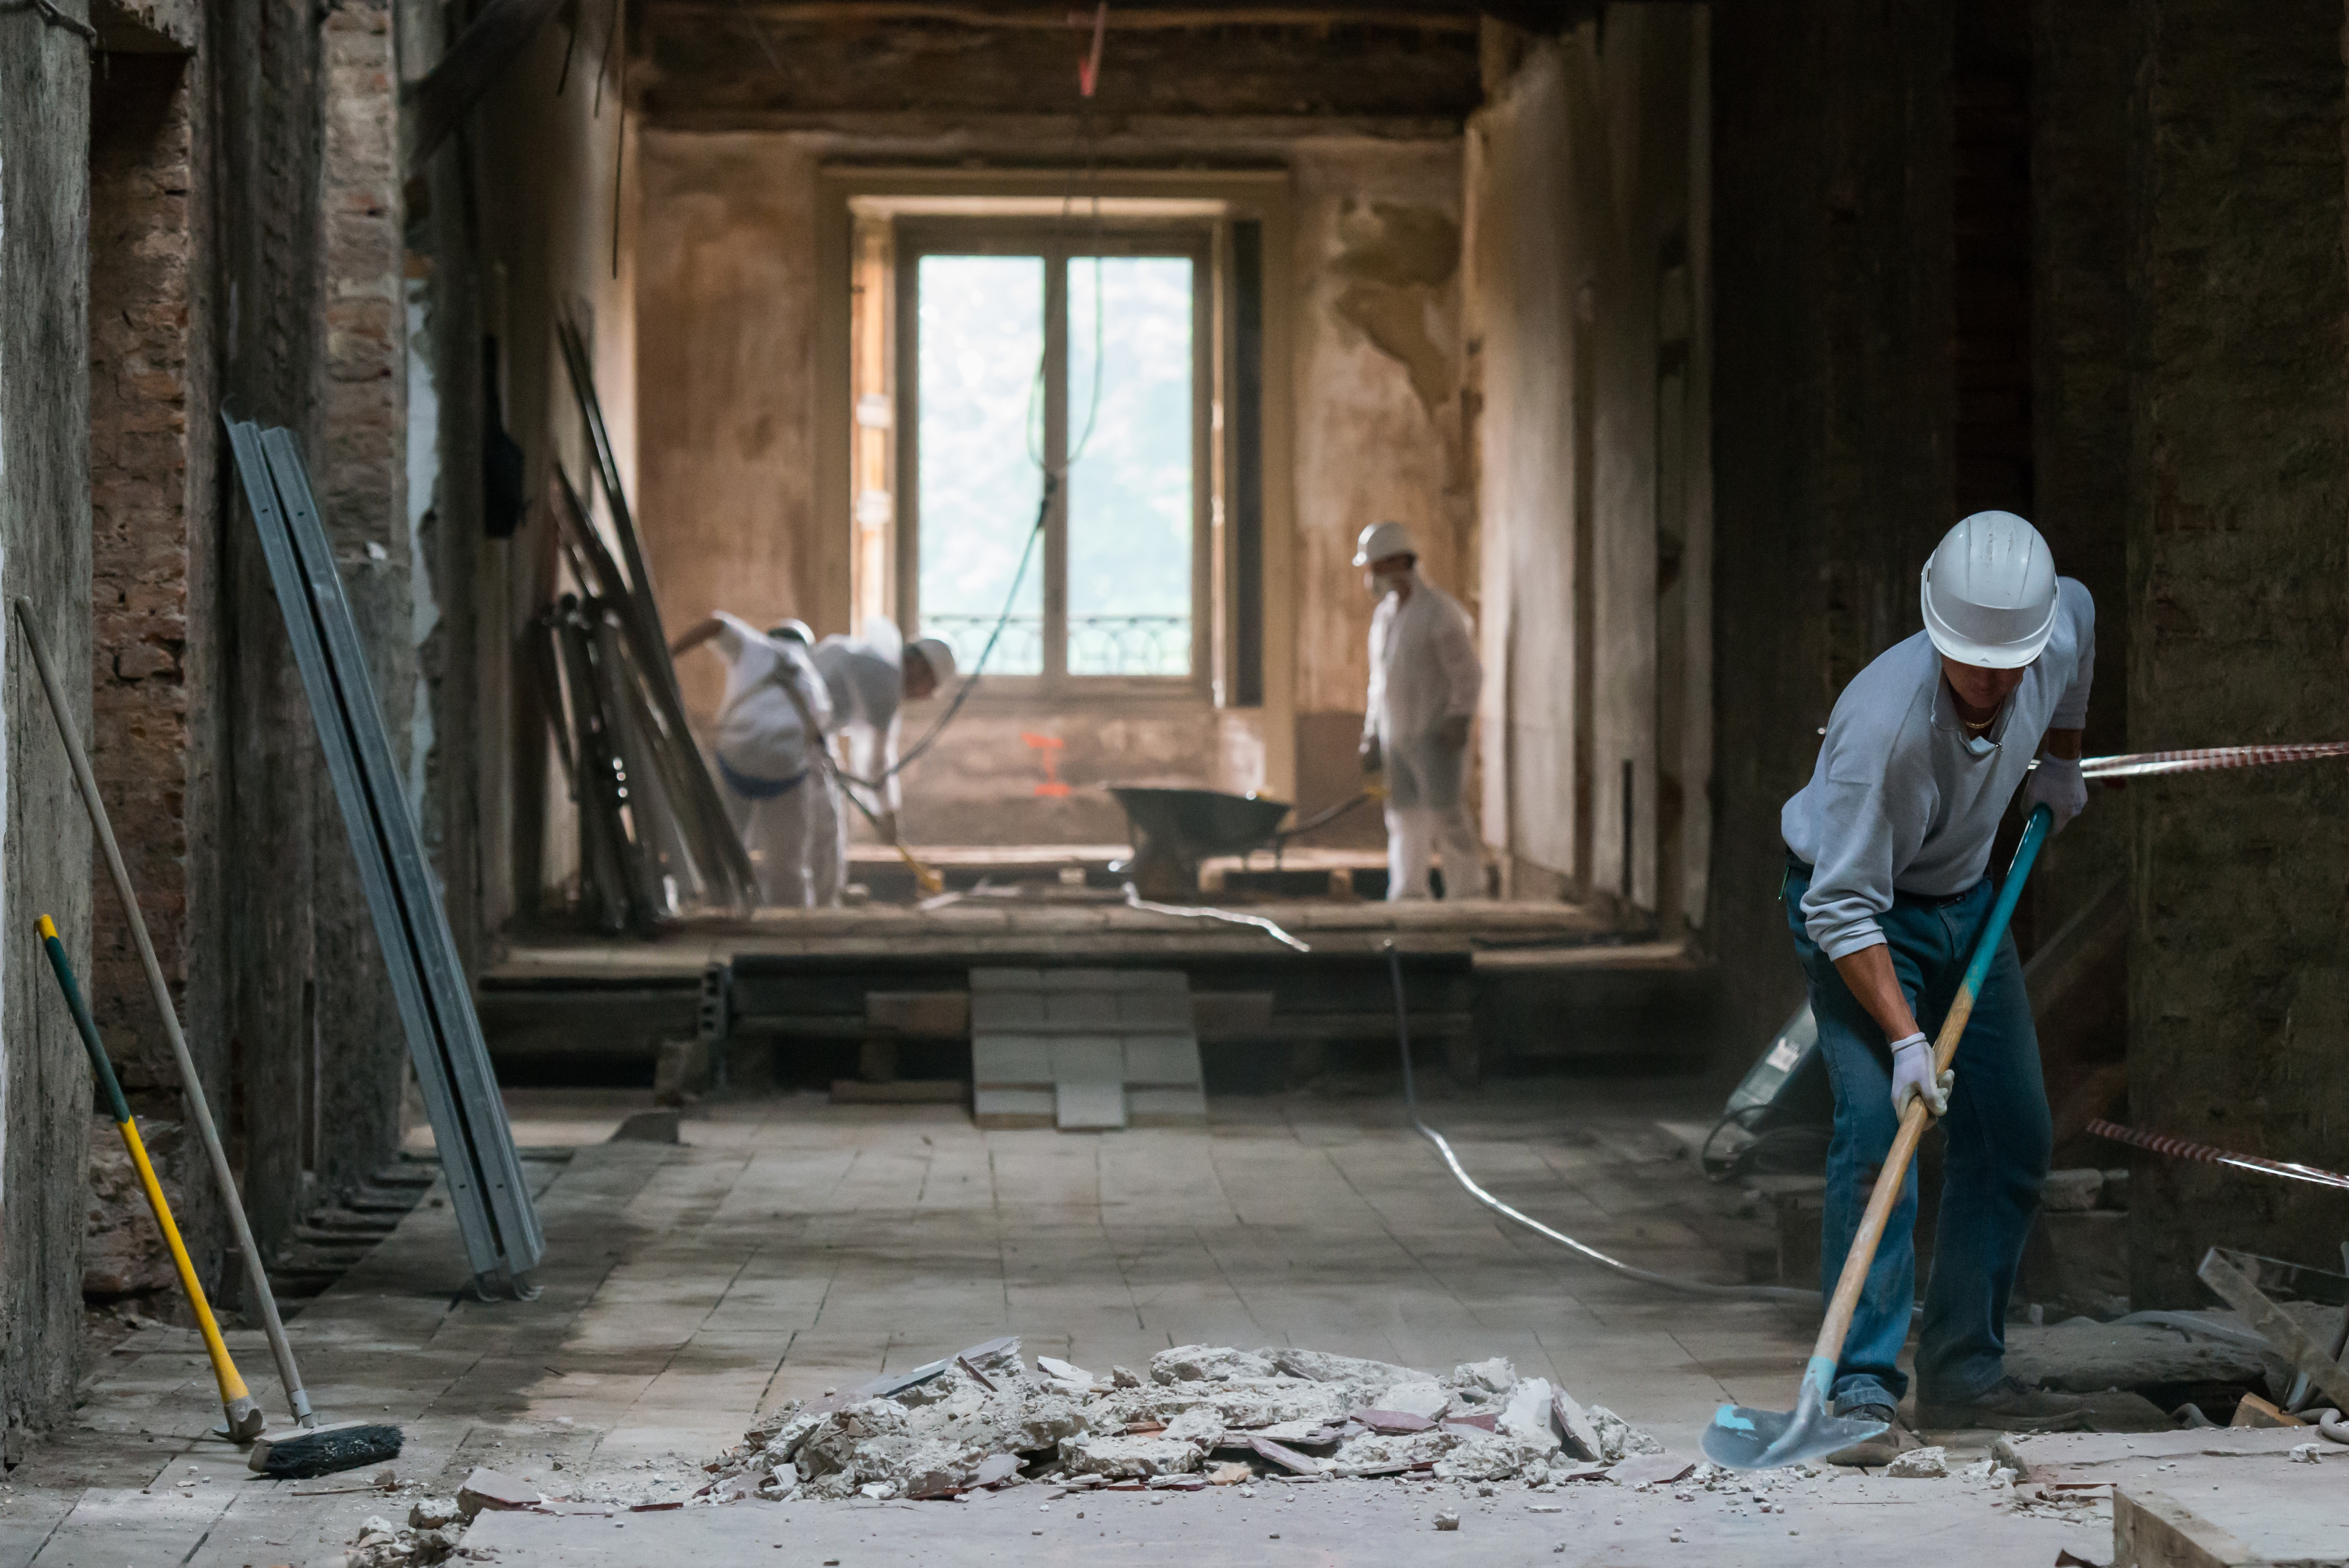 Restoration vs. renovation vs. remodel: What's the difference?